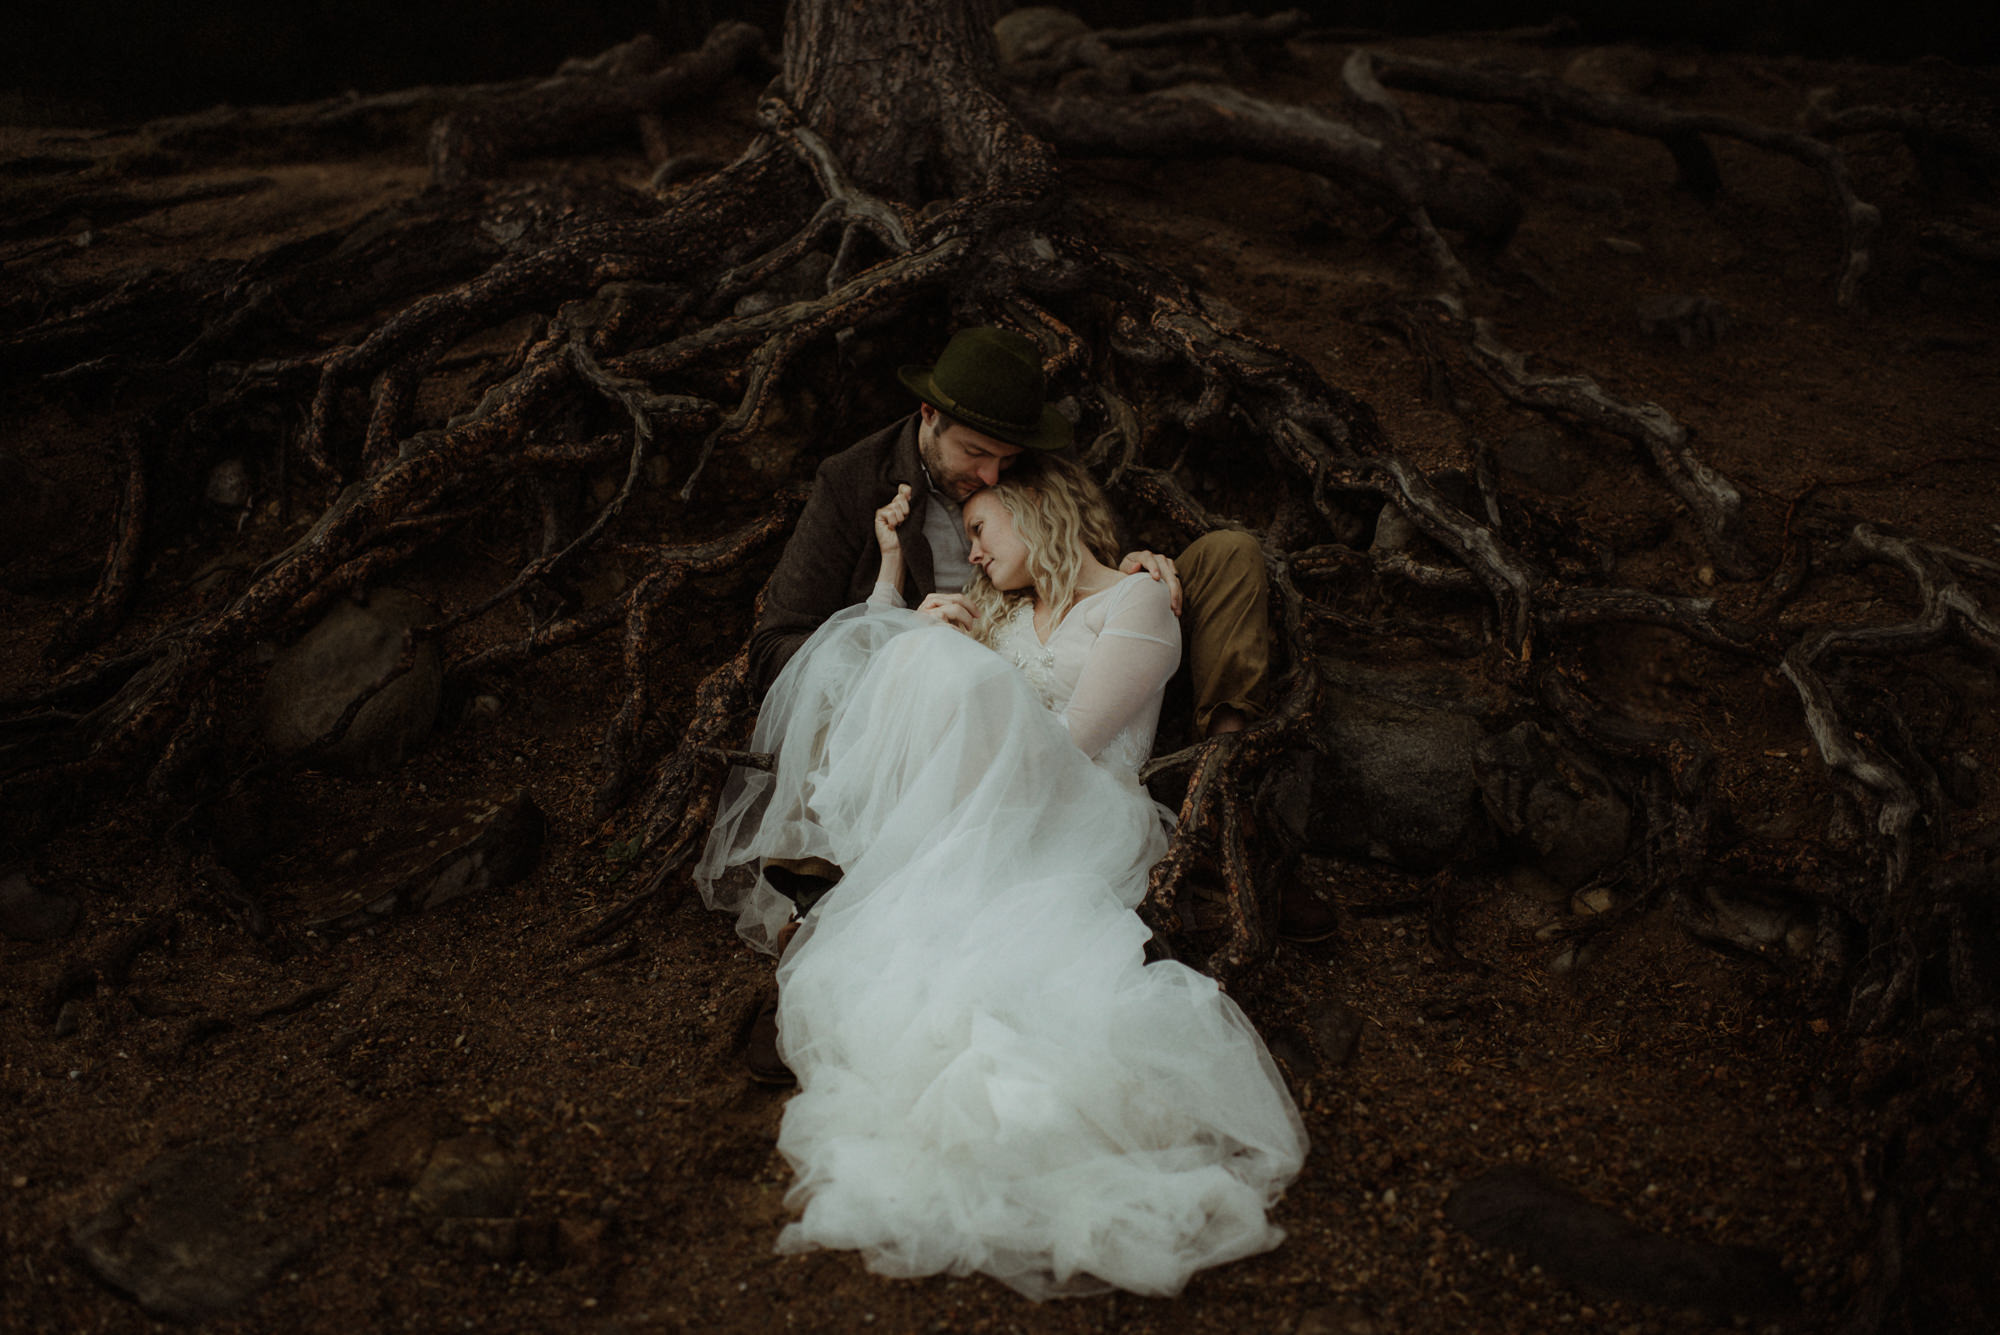 romantic-portrait-couple-laying-in-trees-together-dark-moody-worlds-best-wedding-photos-the-kitcheners-scotland-wedding-photographers